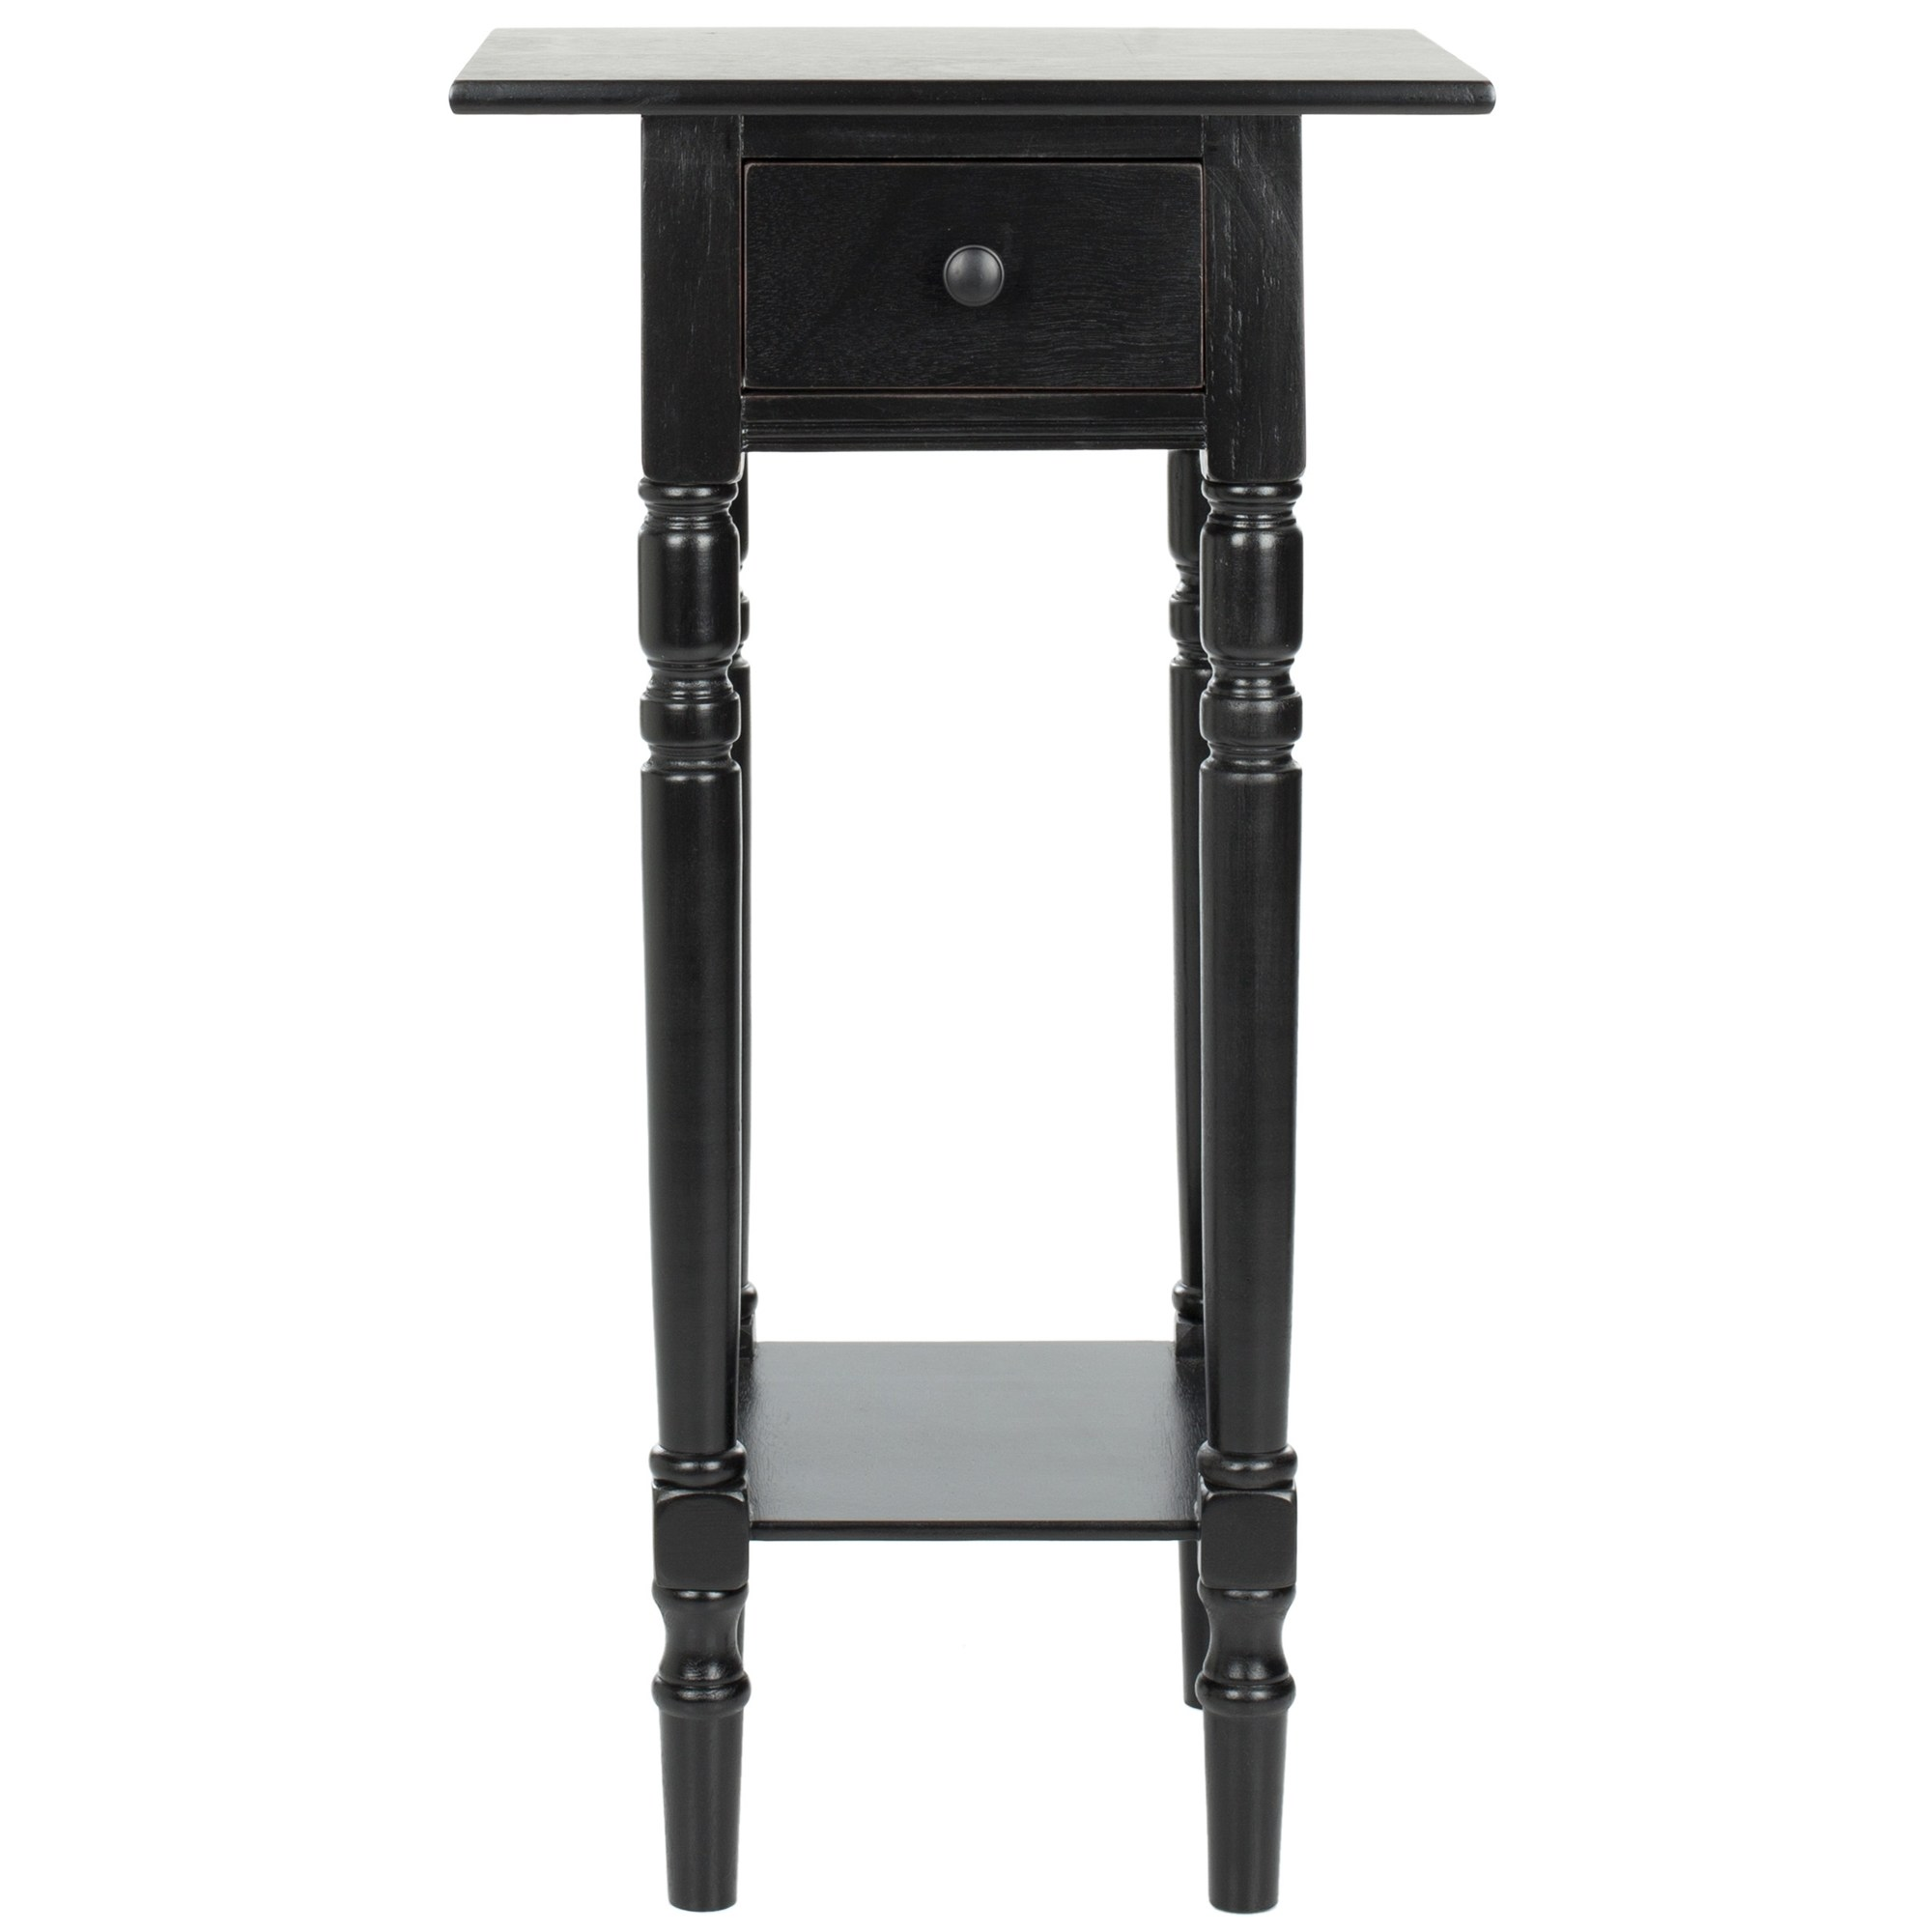 safavieh american home collection dover side table distressed cape cod black accent ture decorative accessories marble glass coffee patio and chairs outdoor set dining room with